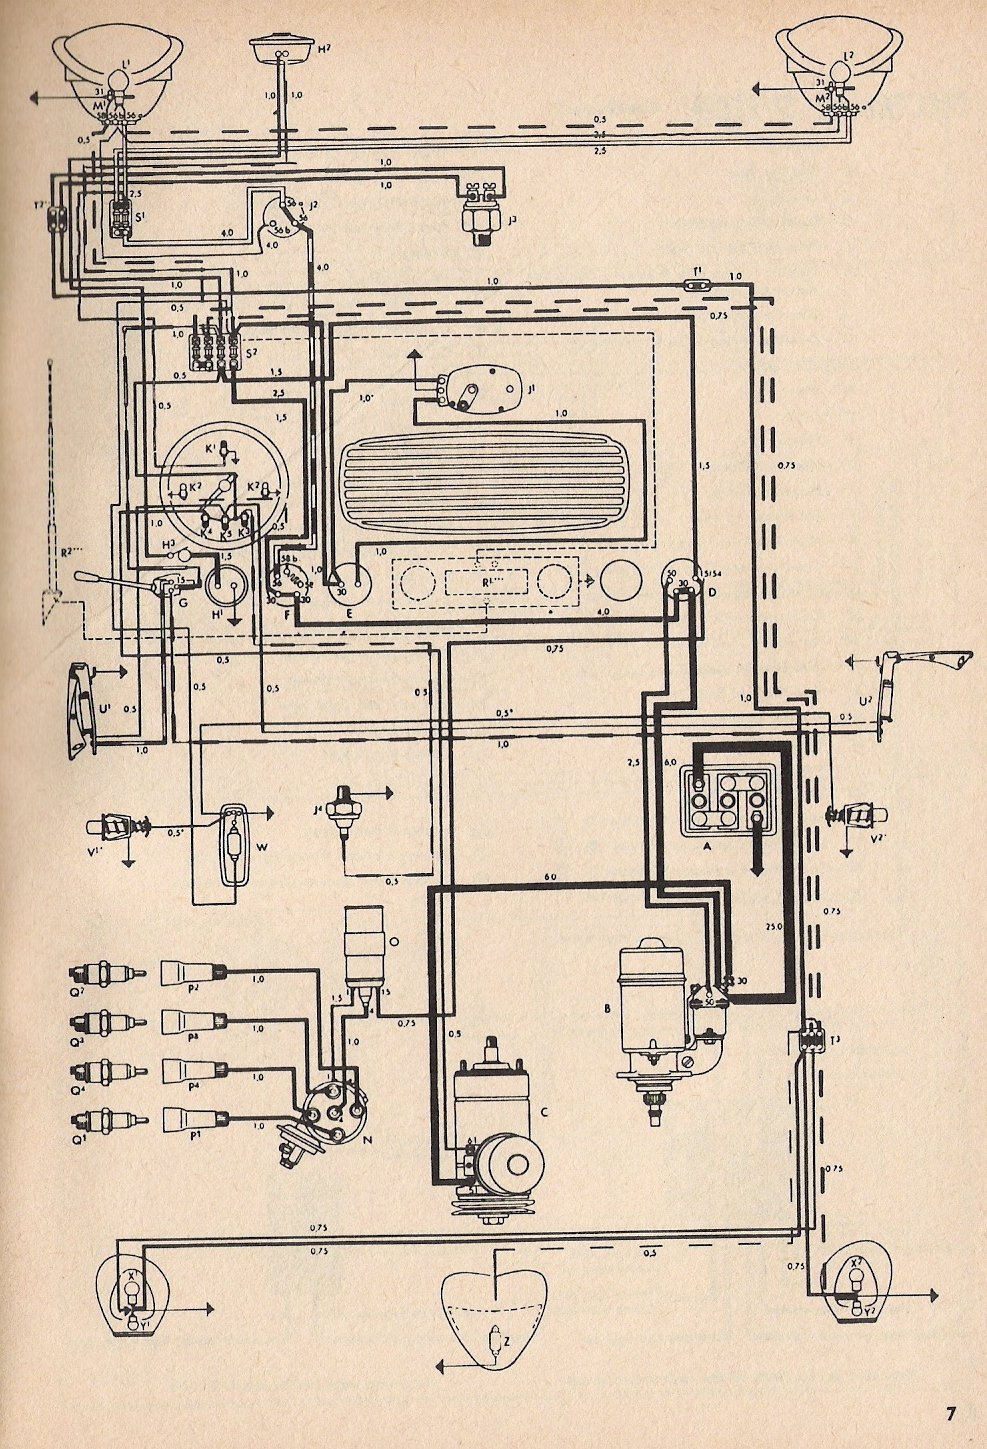 bug_54 thesamba com type 1 wiring diagrams 1968 volkswagen beetle wiring harness at mifinder.co